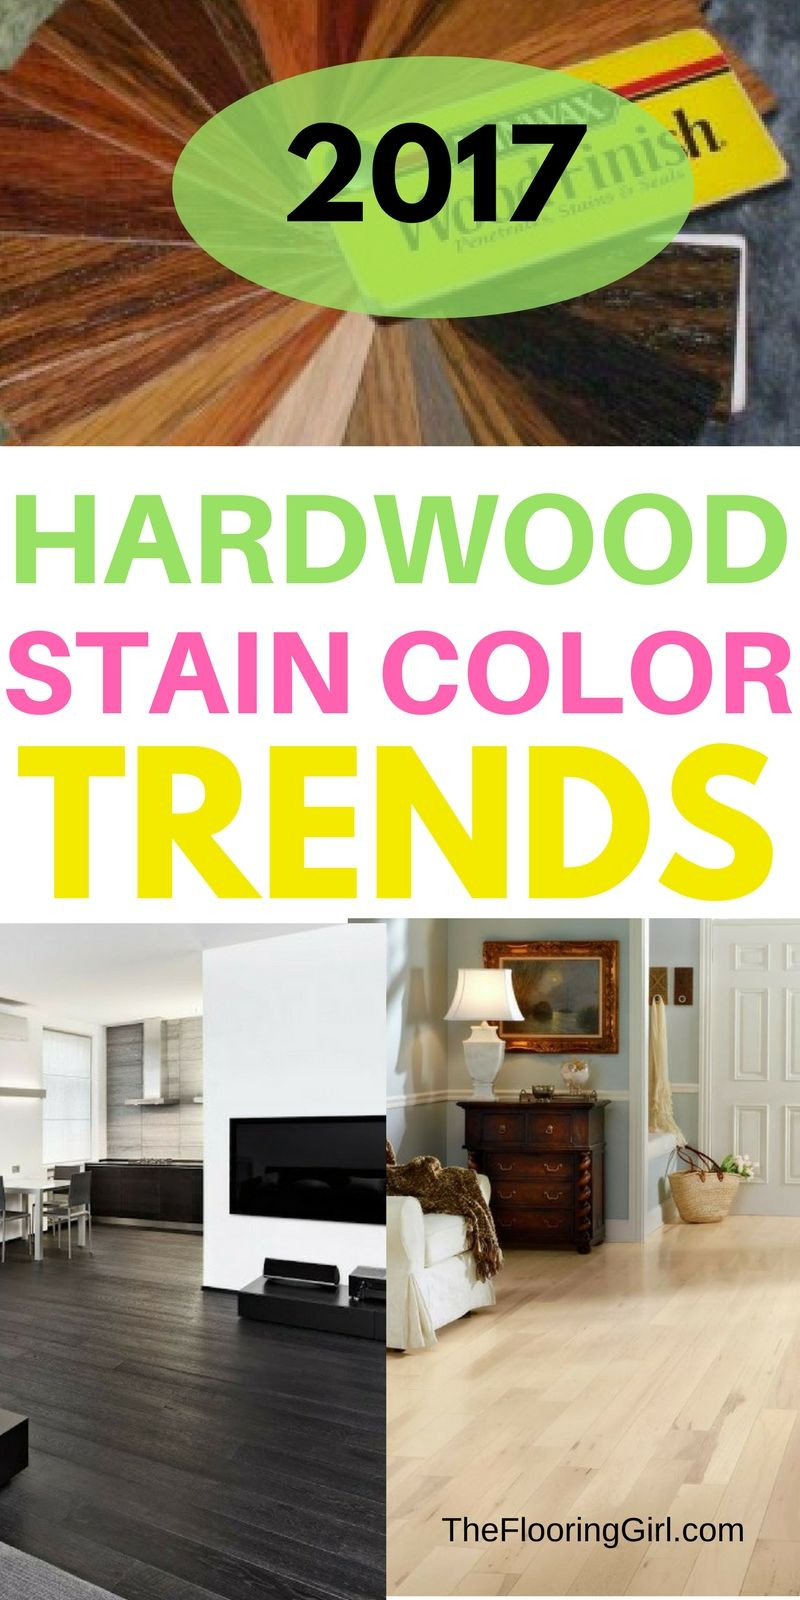 bruce solid oak hardwood flooring reviews of hardwood flooring stain color trends 2018 more from the flooring in hardwood flooring stain color trends for 2017 hardwood colors that are in style theflooringgirl com